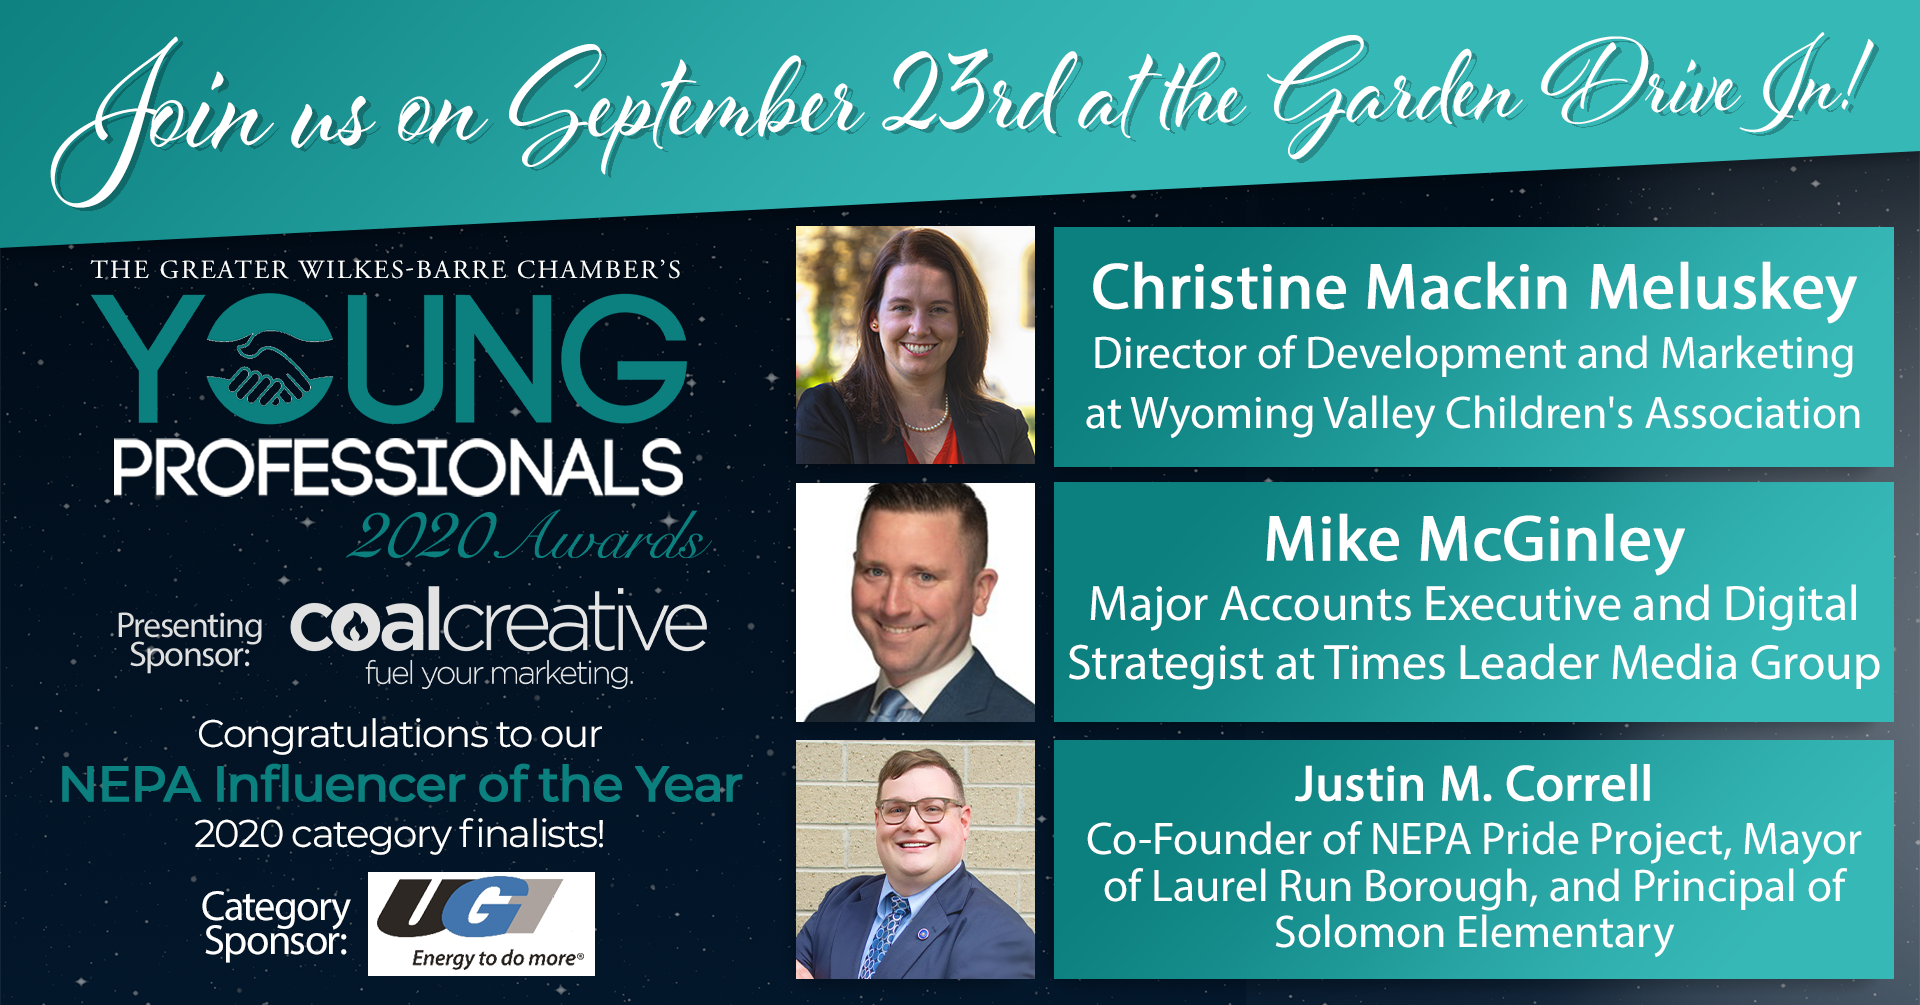 Meet the 2020 Young Professionals Category Finalists for NEPA Influencer of the Year!